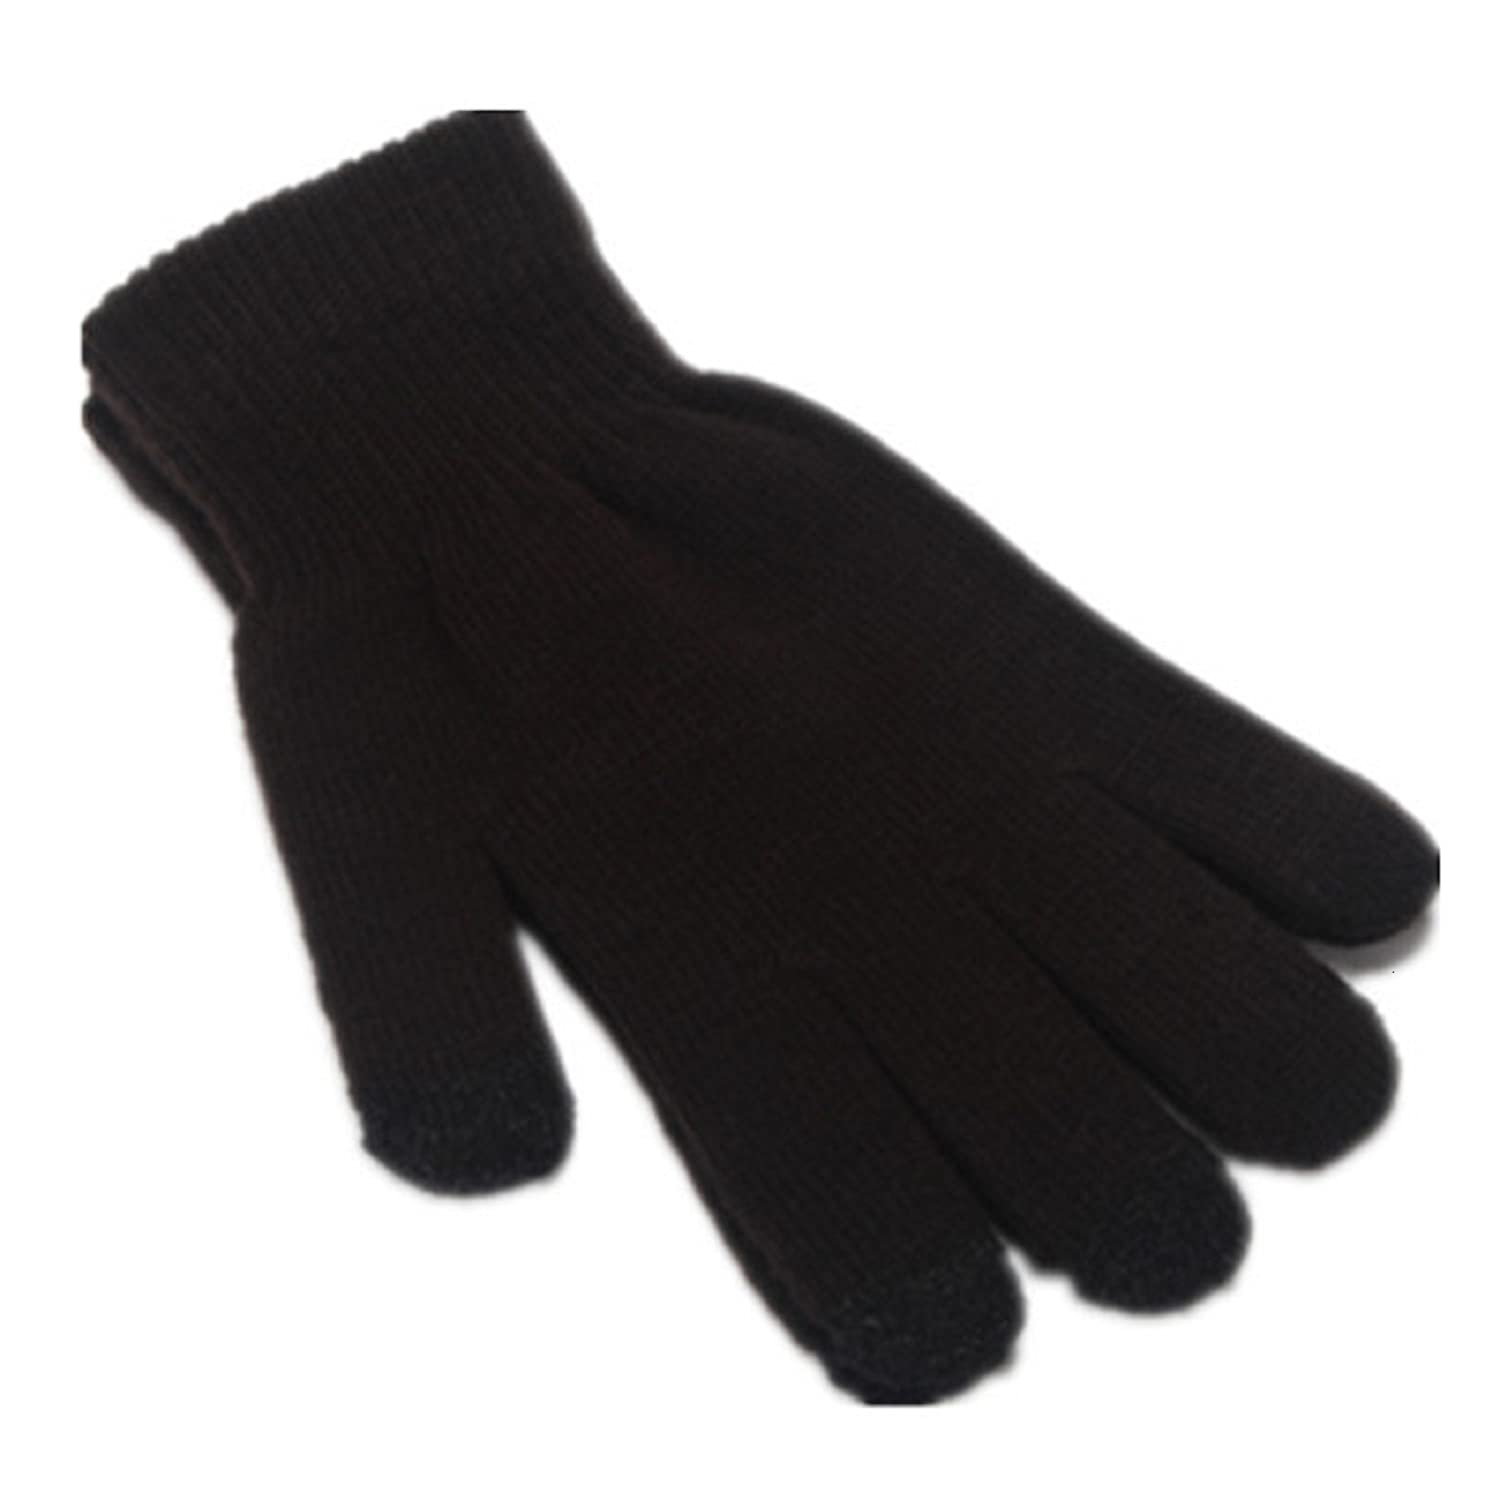 Warm Knitted Stretch touchscreen//texting winter gloves with a soft texture ITS RIDIC Black Just thick enough to not be bulky